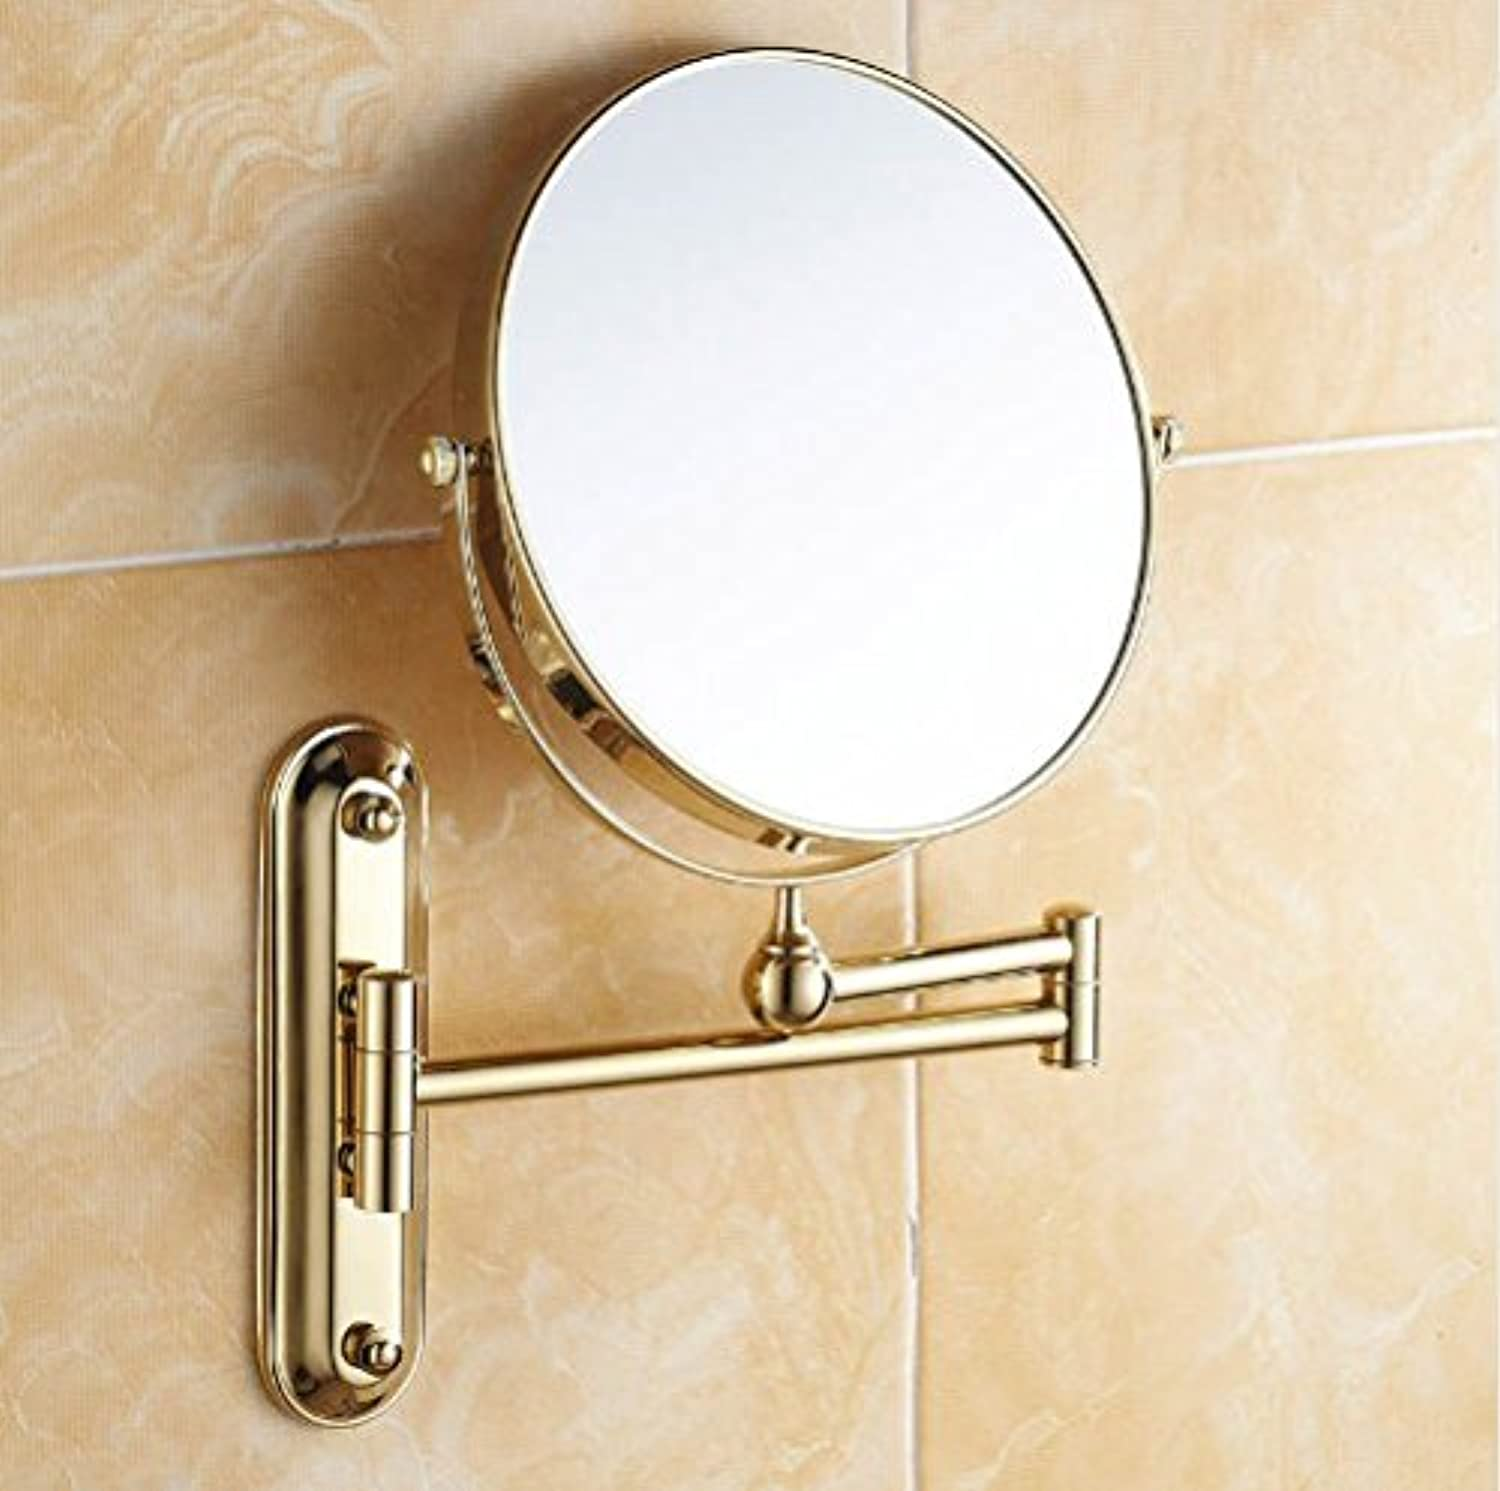 GOWE gold Finish Wall Mount Bath Make up Mirror 8inch Dual Sides Mirror